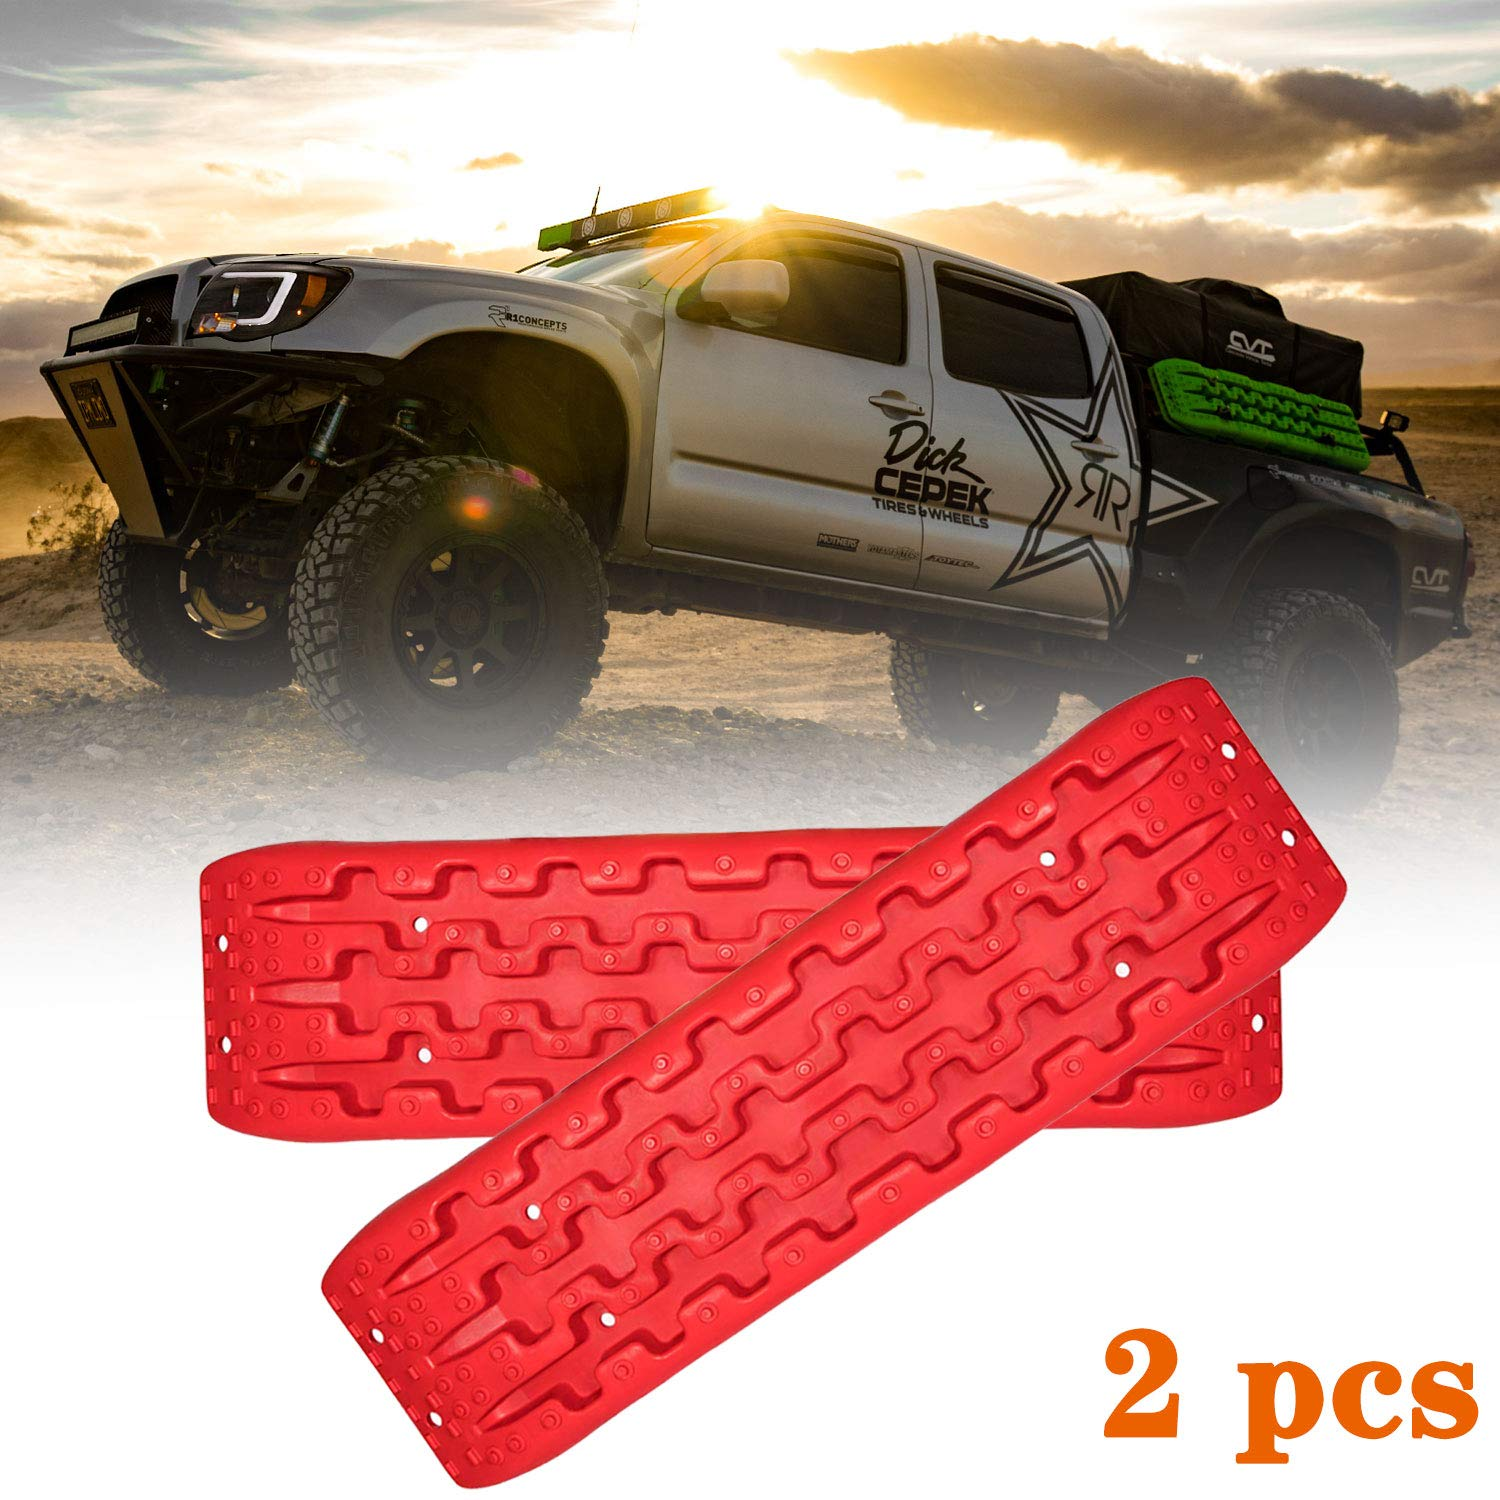 Red Recovery Traction Tracks Emergency Tool Big Size 2 Pcs Off-Road Mud Sand Snow Track Tire Ladder